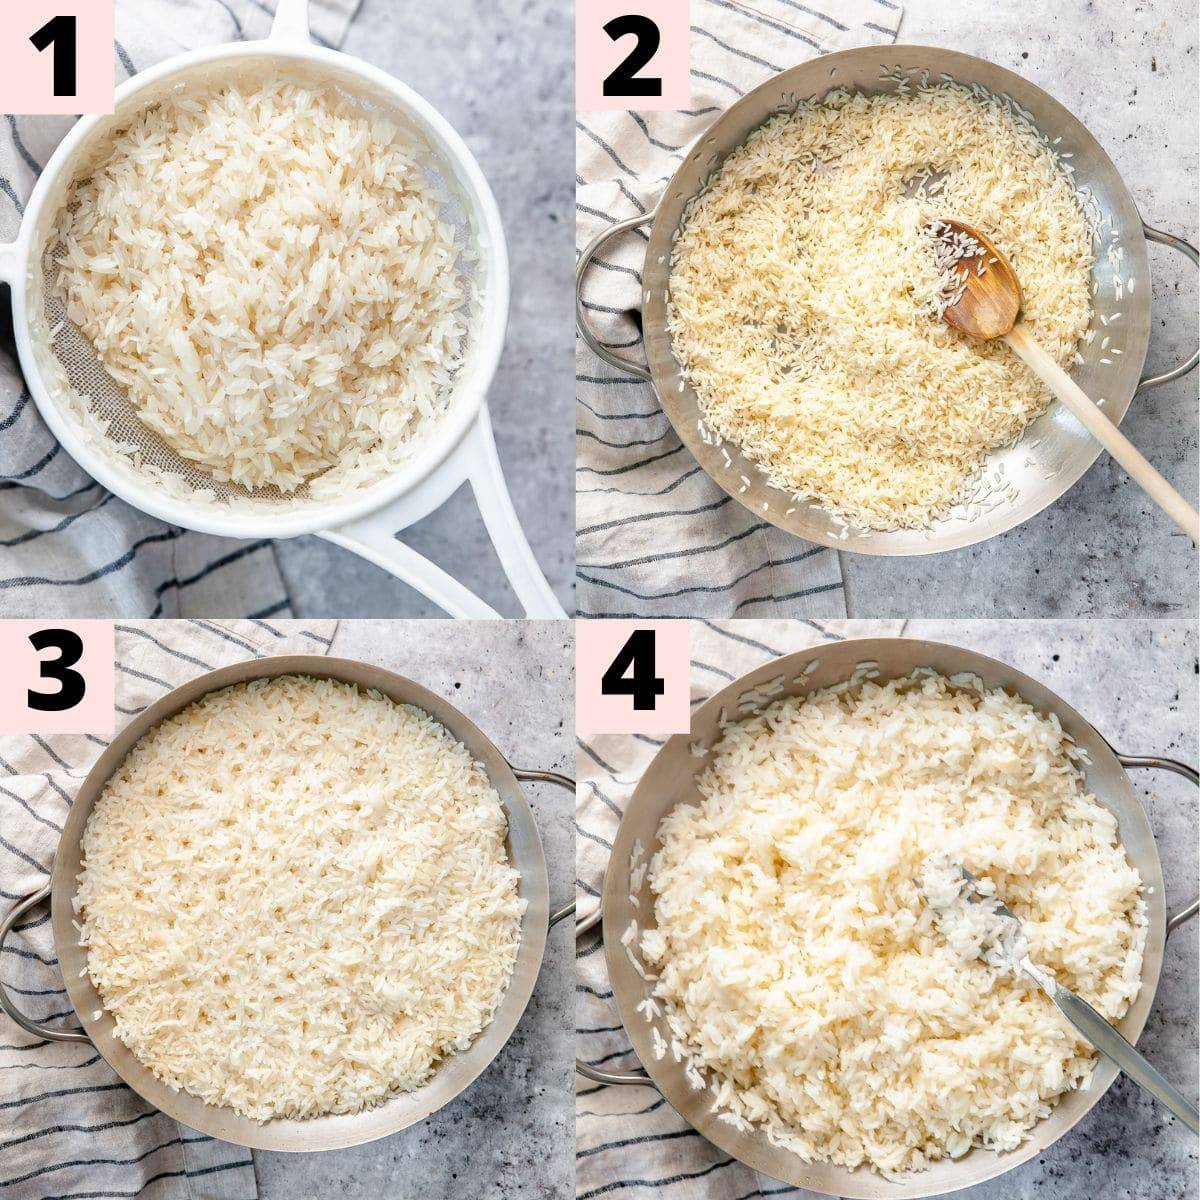 Step by step instructions for preparing jasmine rice